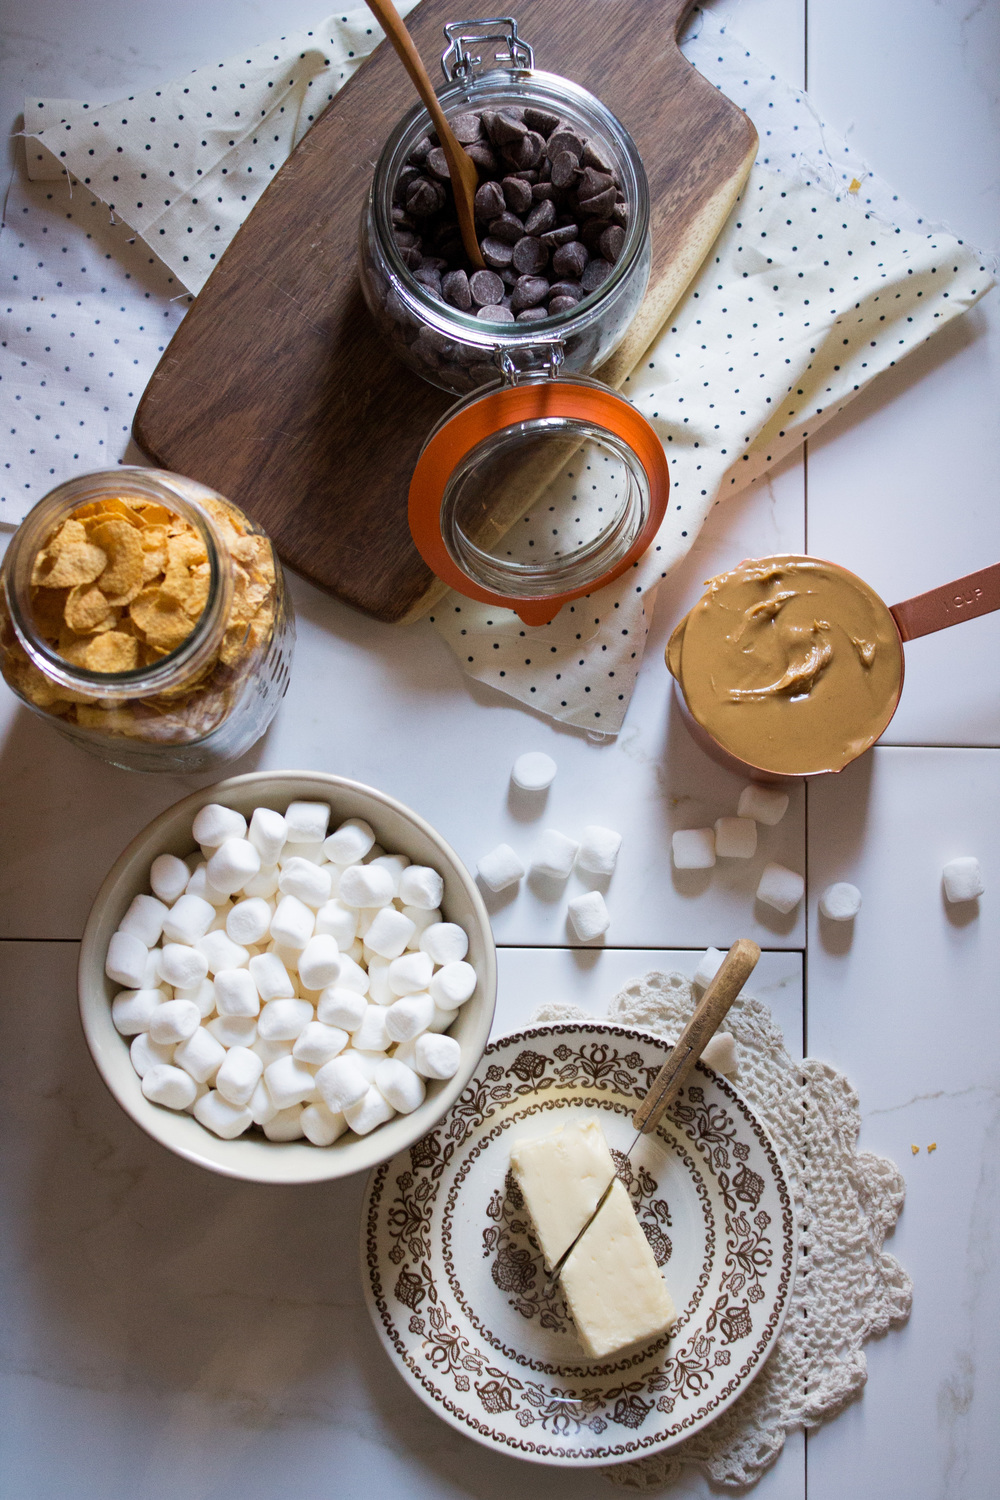 Peanut Butter and Chocolate Marshmallow Treats {Pedantic Foodie}